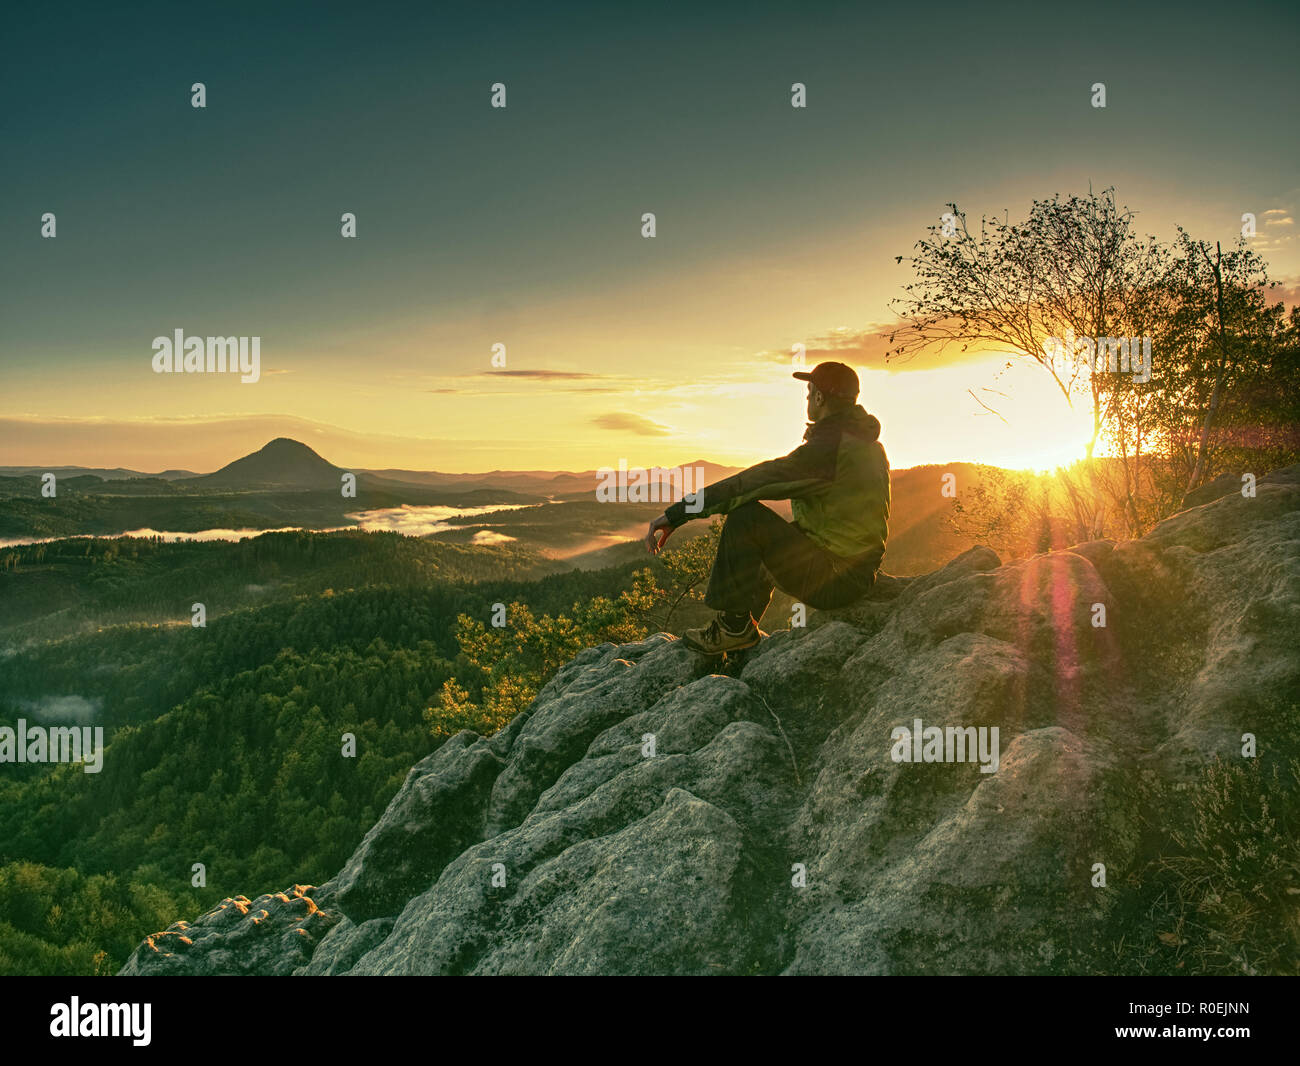 Crazy man at edge. Fearless hiker on cliff above deep hole. Morning or evening Sun close to horizon. Pure nature landscape - Stock Image